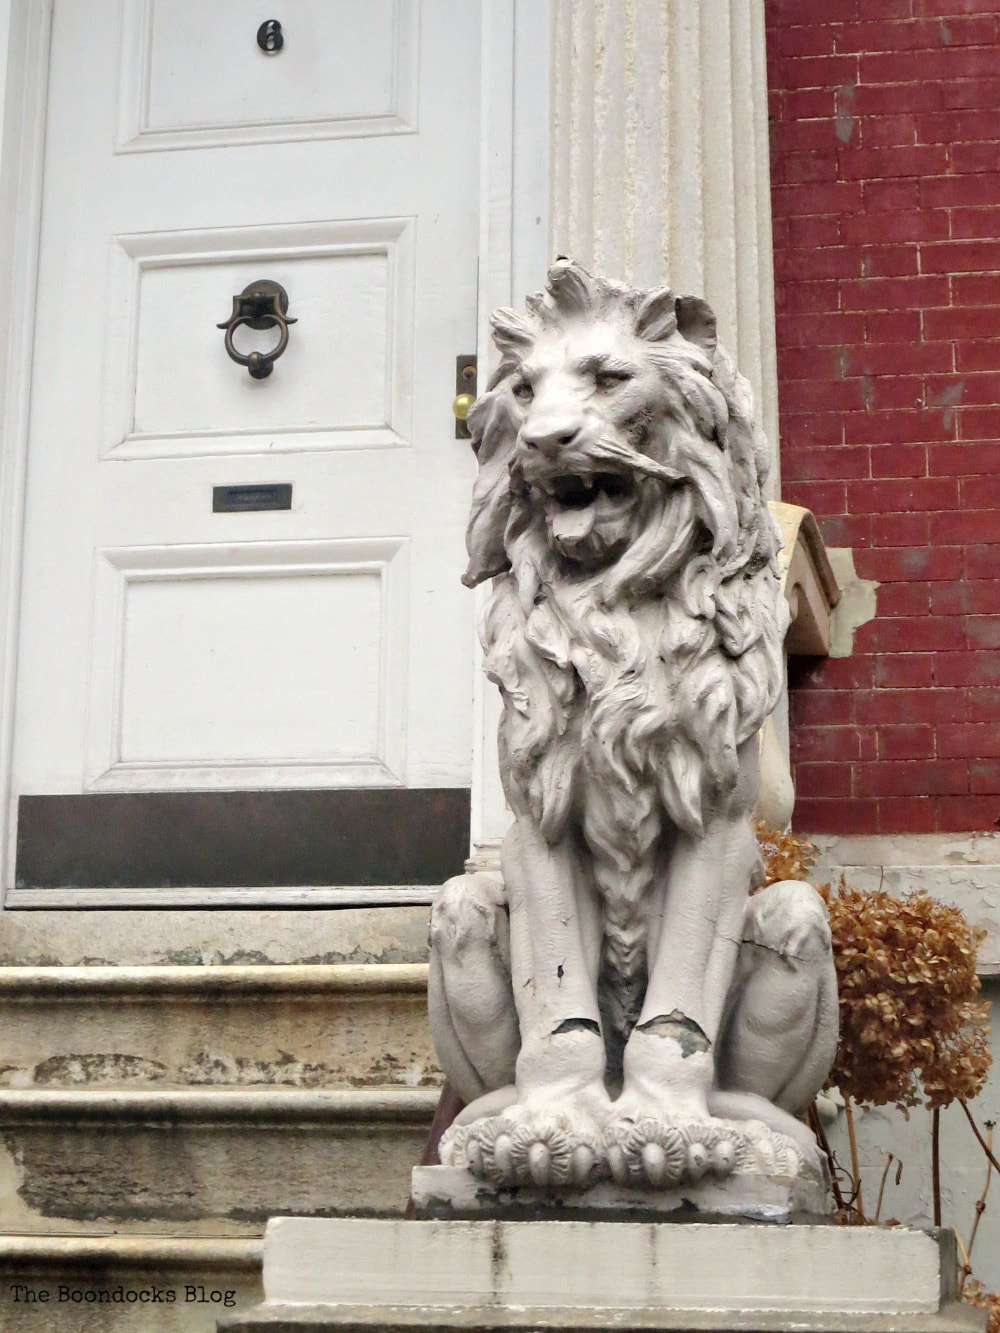 Row house with lion sculpture, Interesting things to see in Greenwich Village www.theboondocksblog.com